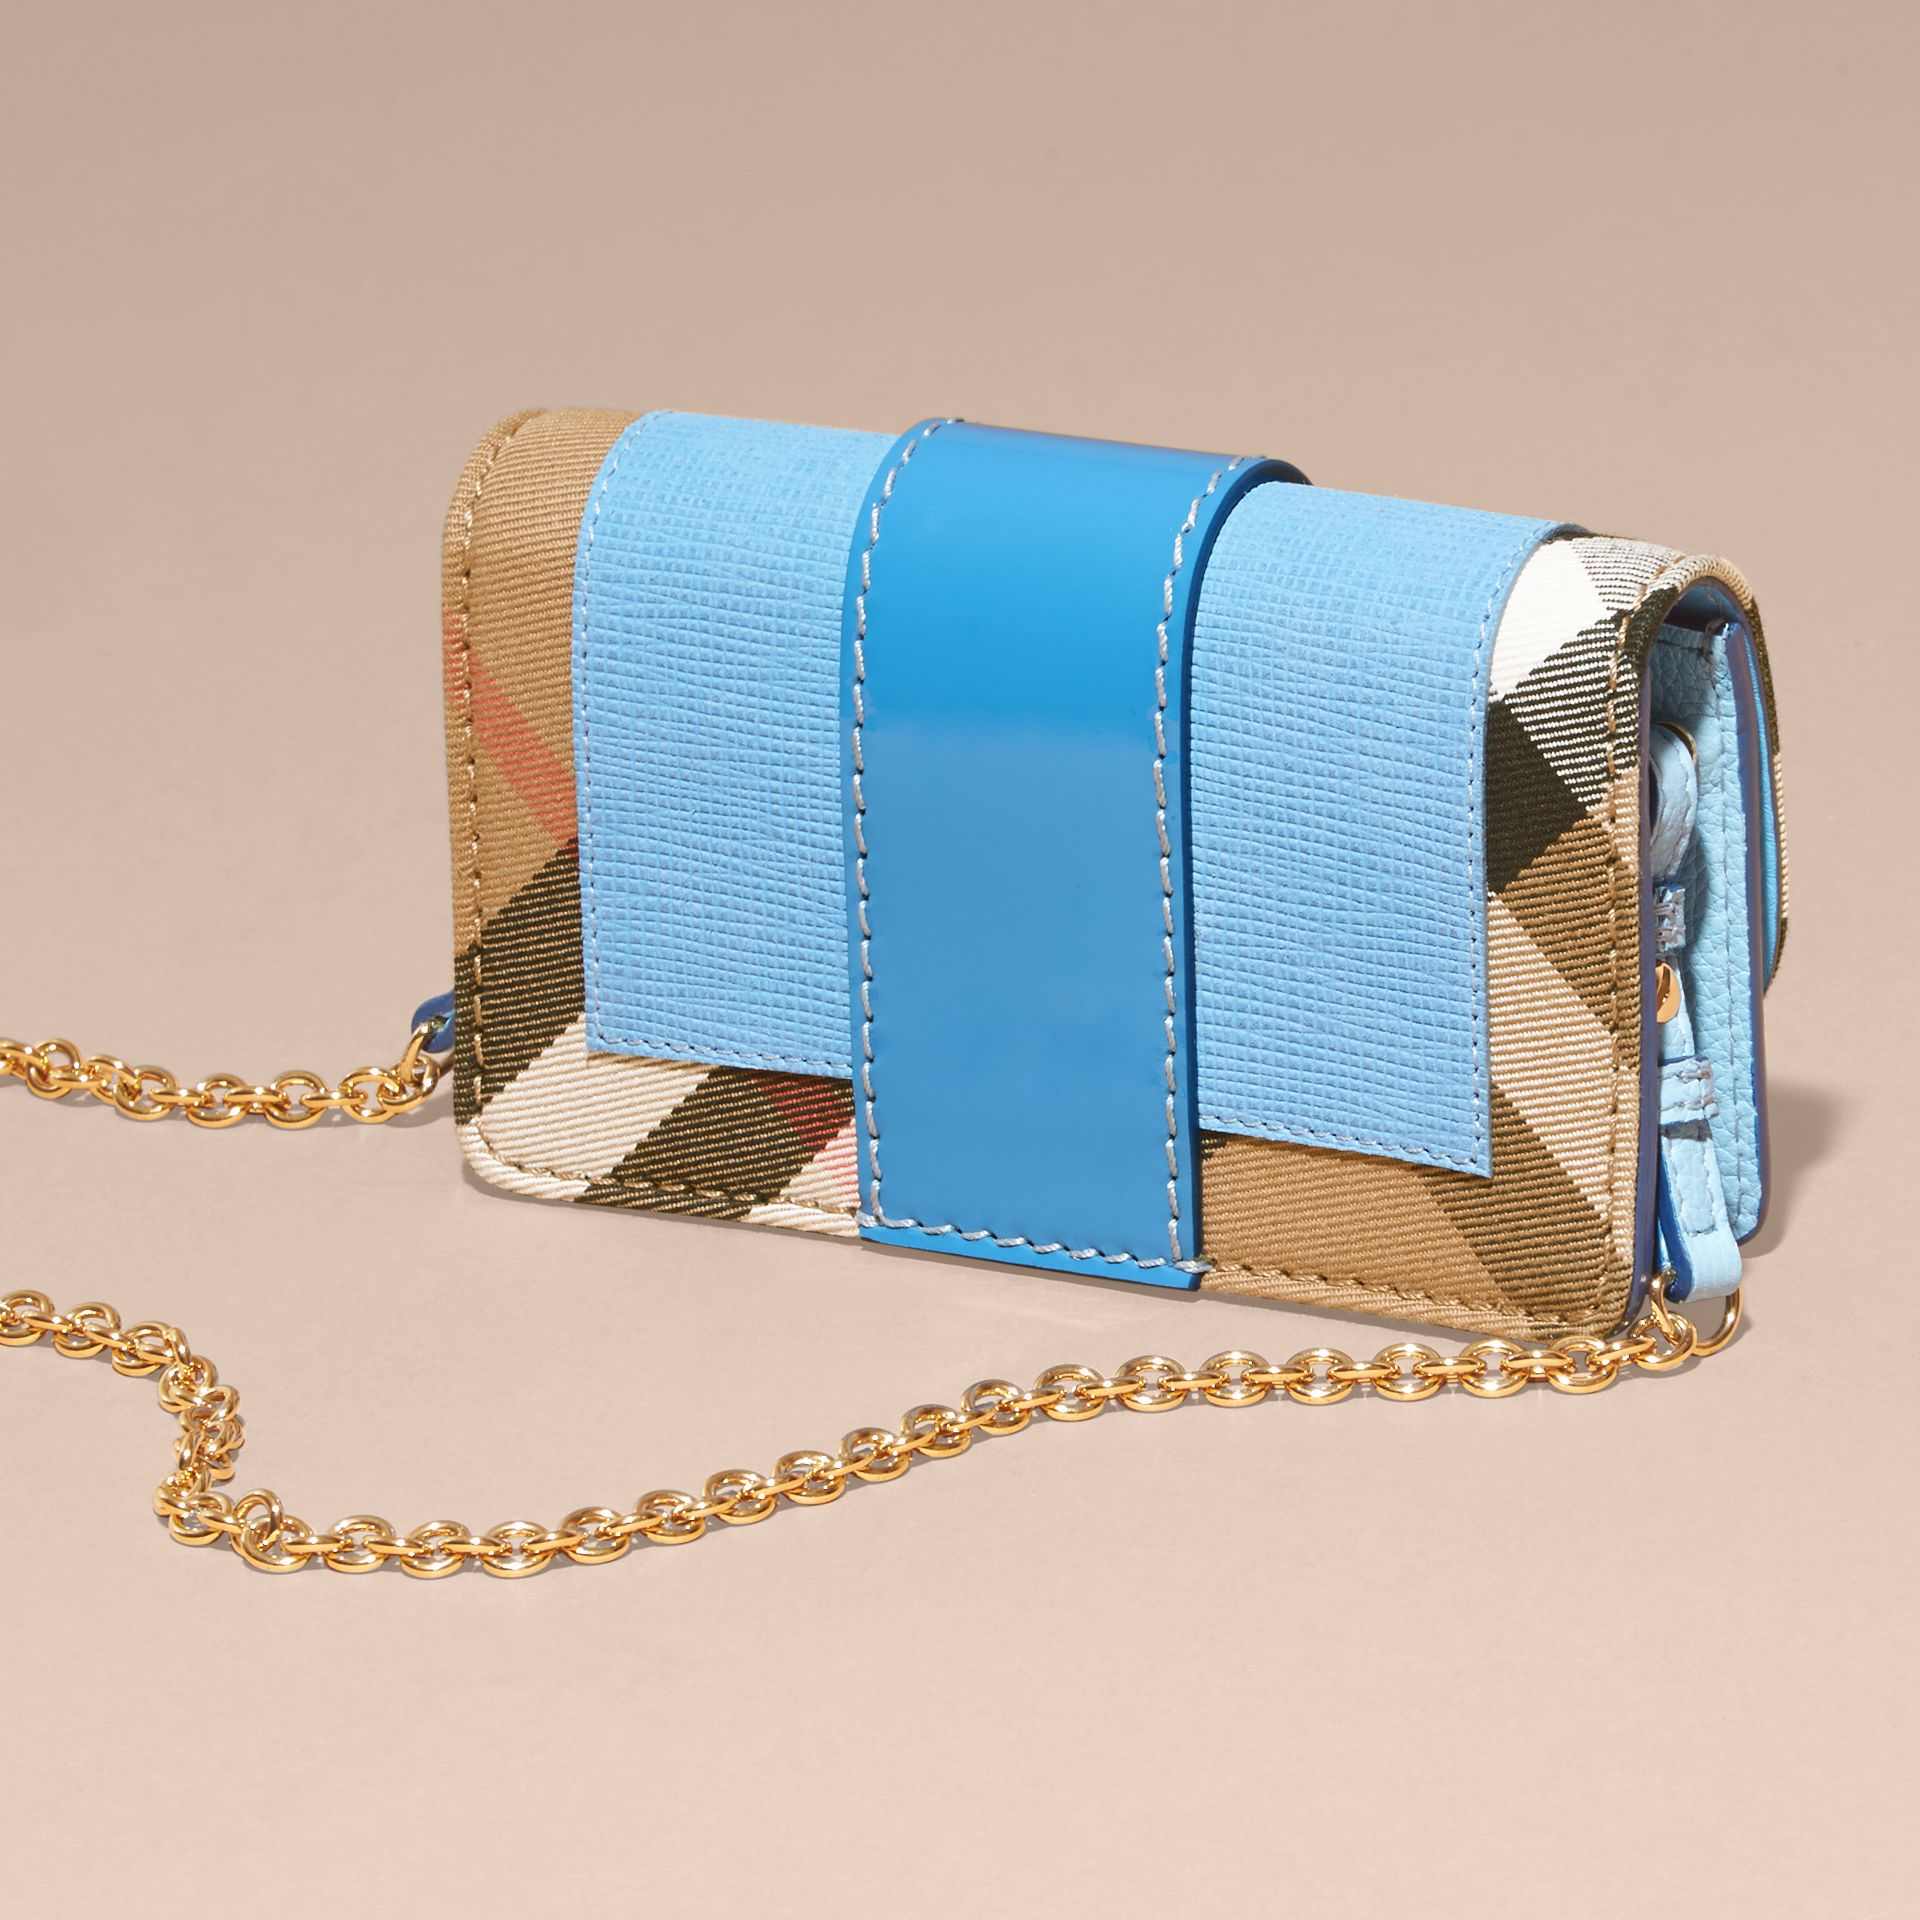 Bright mineral blue The Mini Buckle Bag in Leather and House Check Bright Mineral Blue - gallery image 5